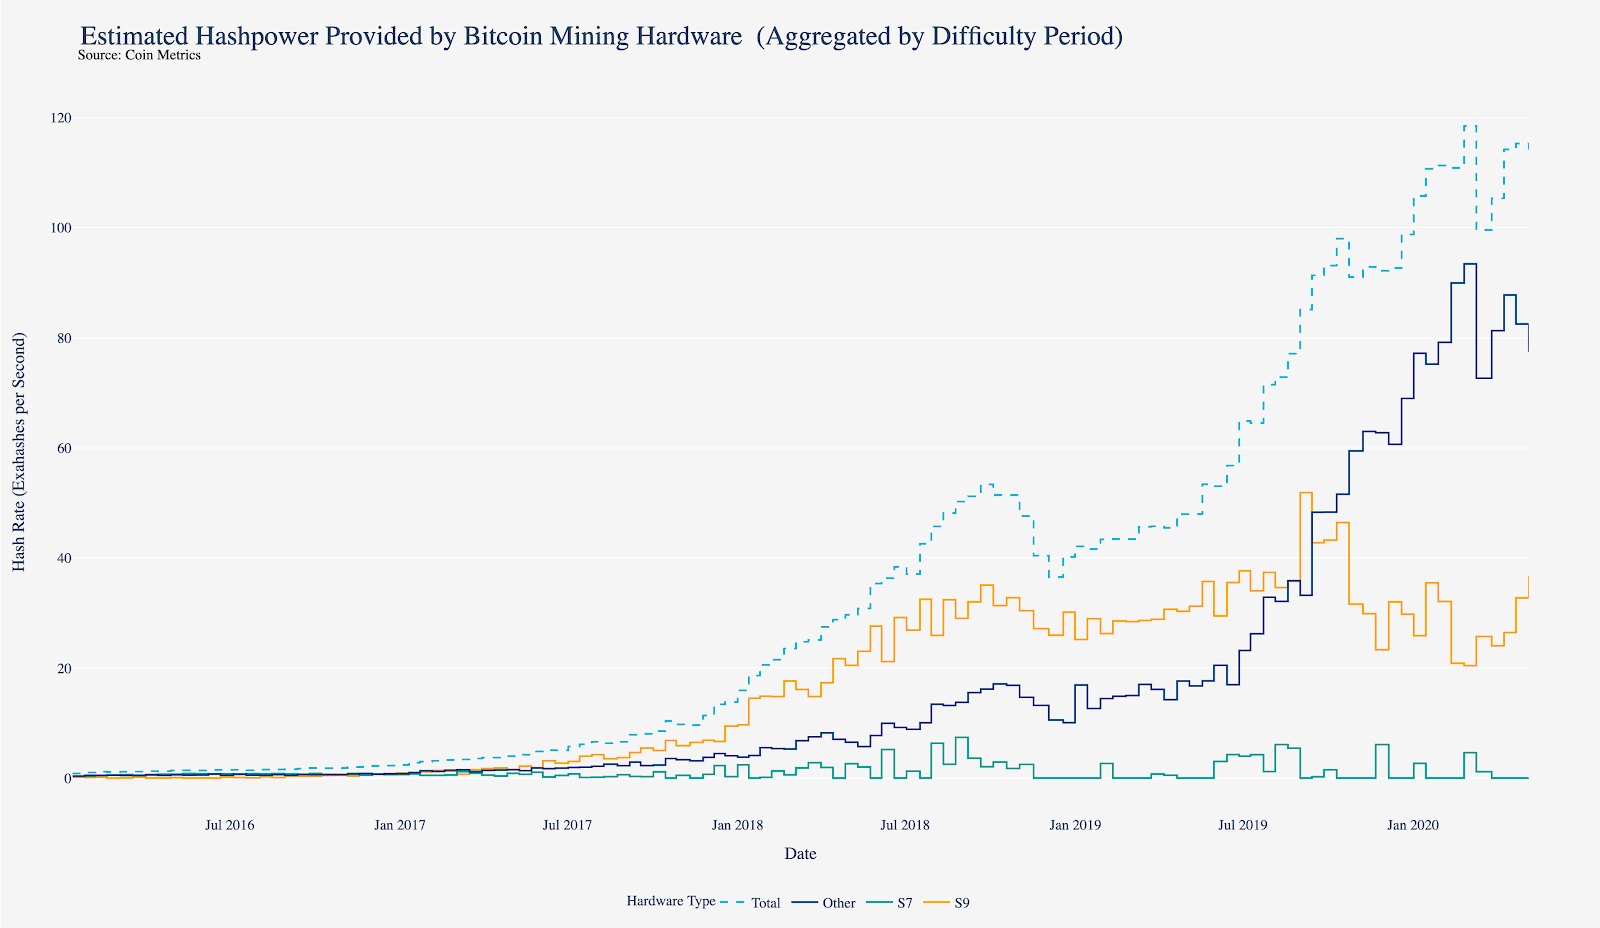 Why Chinese miners don't attack Bitcoin 51%